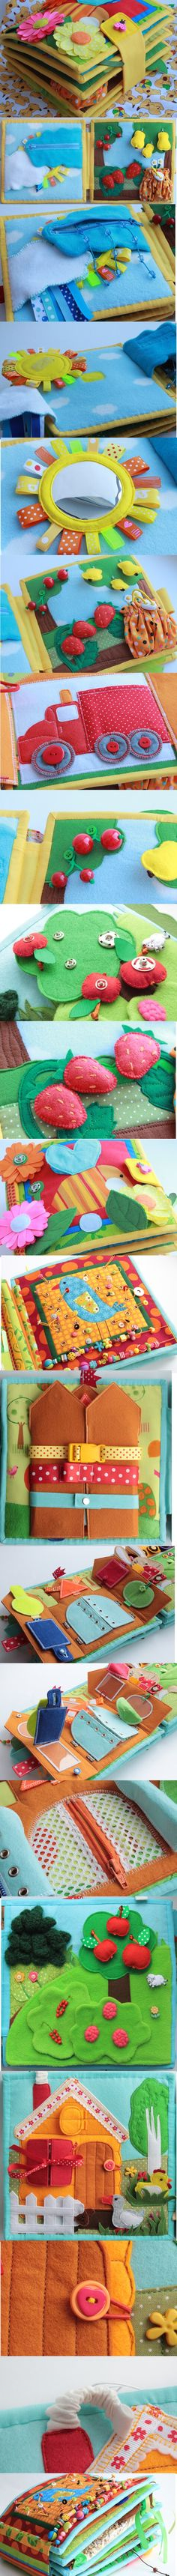 Quiet Book - Inspiration only Diy Quiet Books, Baby Quiet Book, Felt Quiet Books, Baby Crafts, Felt Crafts, Diy And Crafts, Crafts For Kids, Quiet Book Patterns, Book Quilt